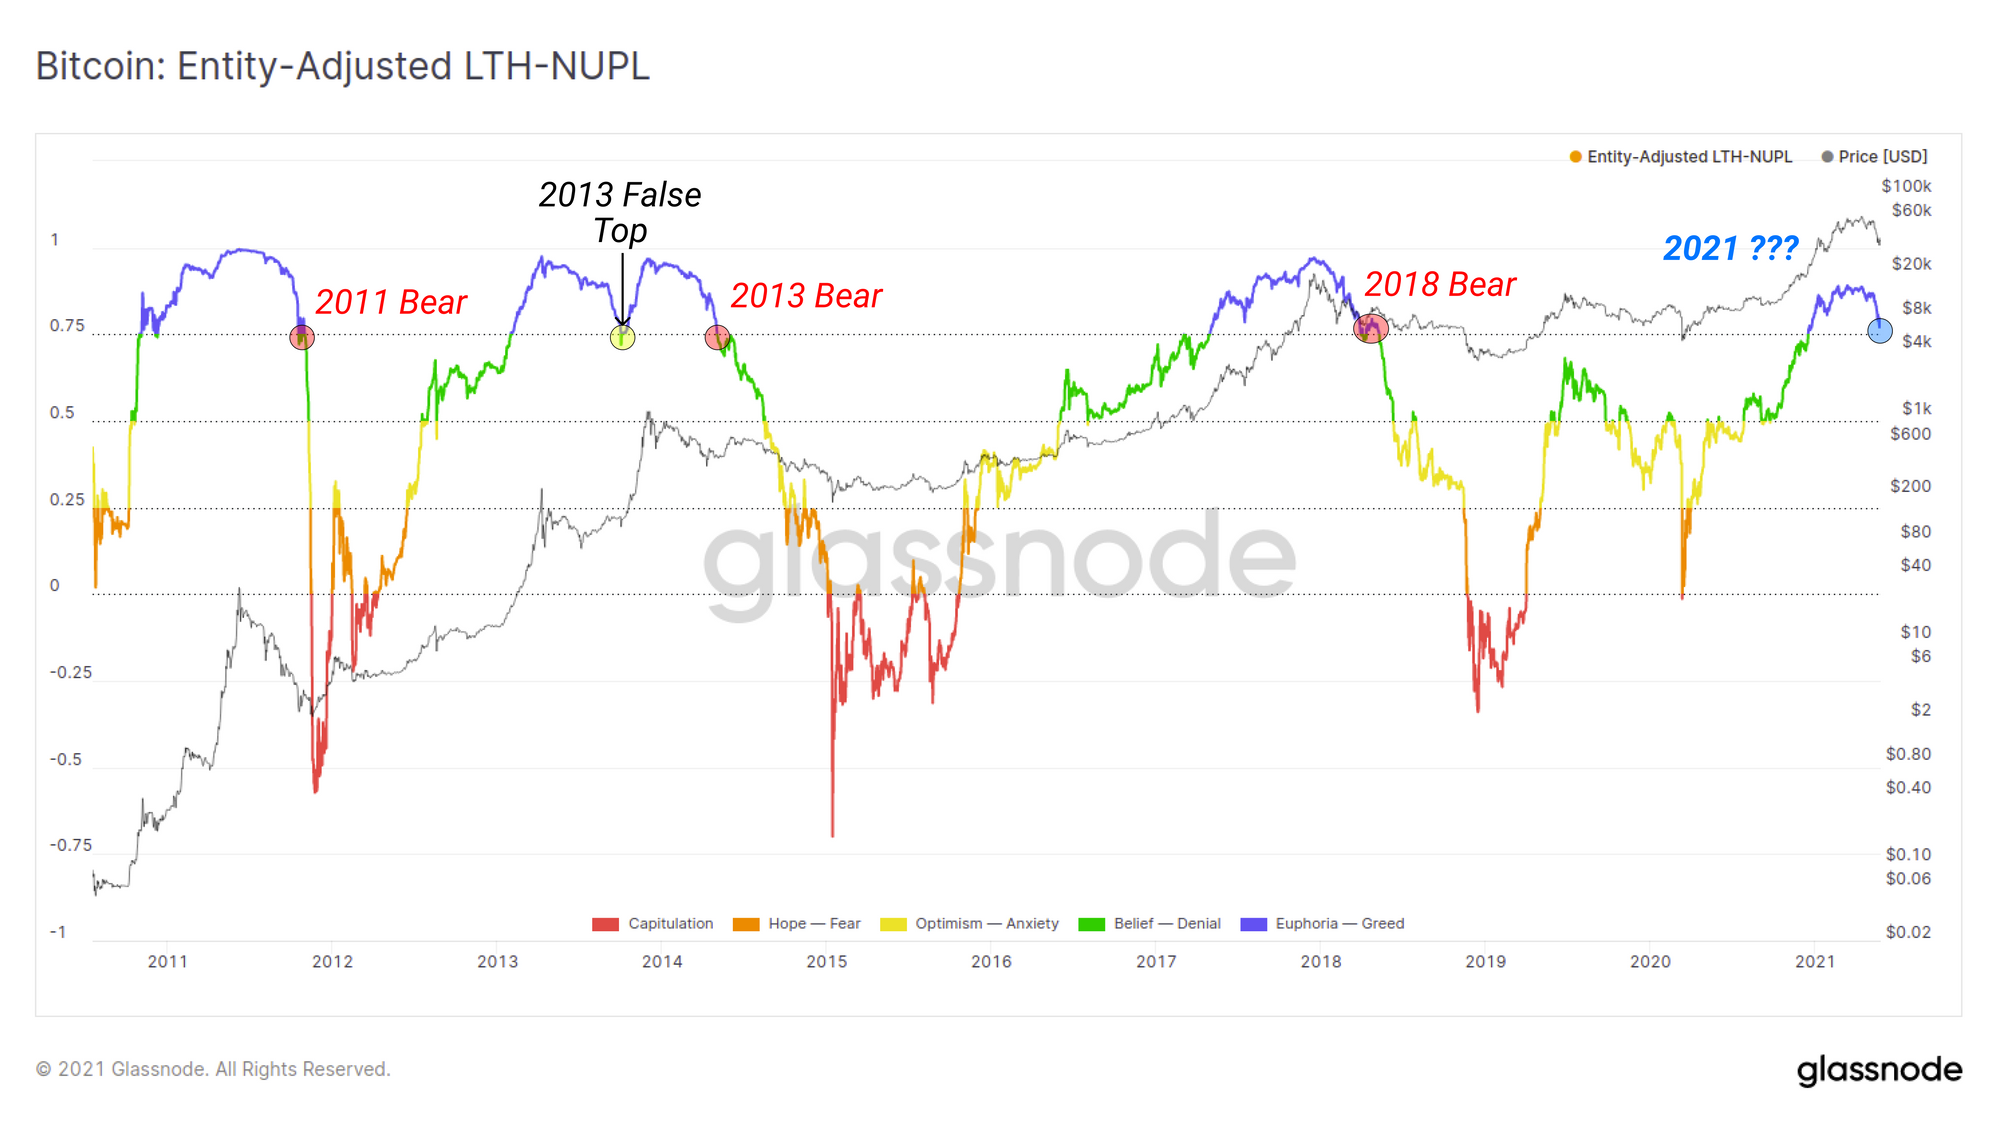 Surveying the May 2021 Sell-off